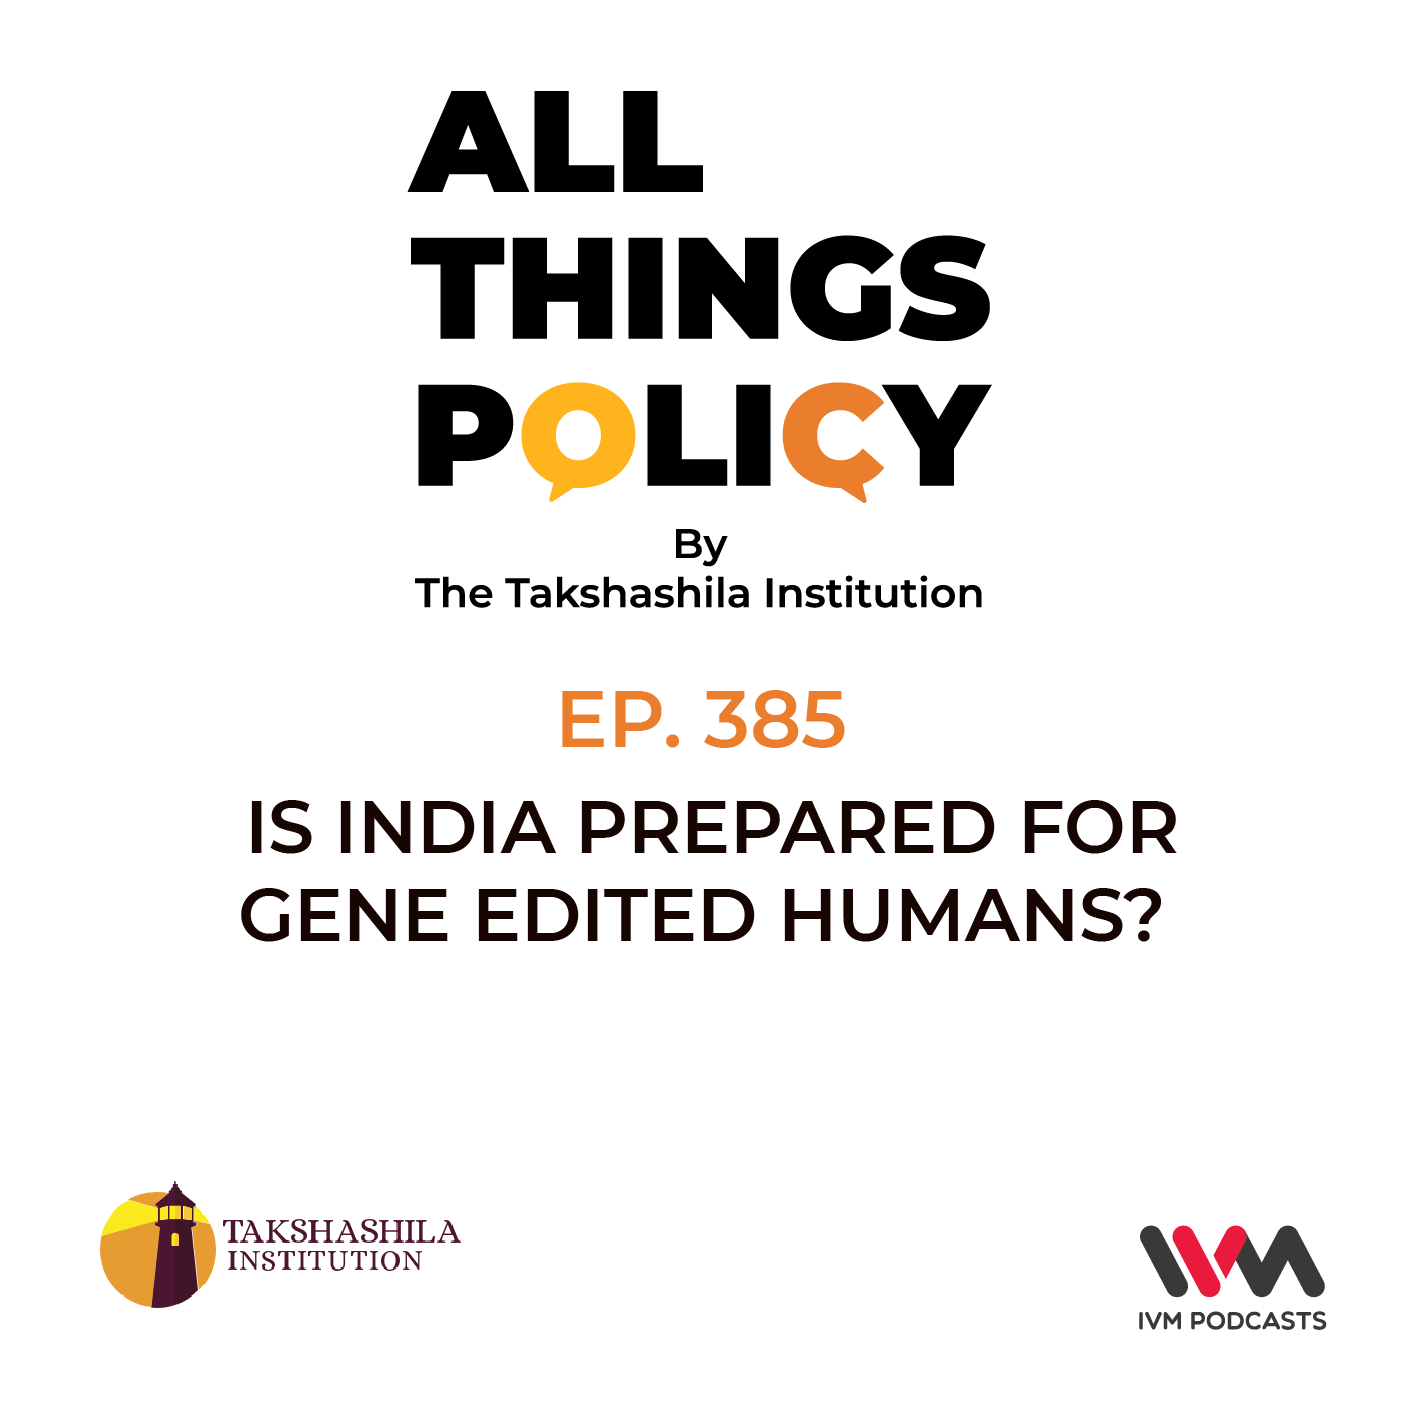 Ep. 385: Is India Prepared for Gene Edited Humans?